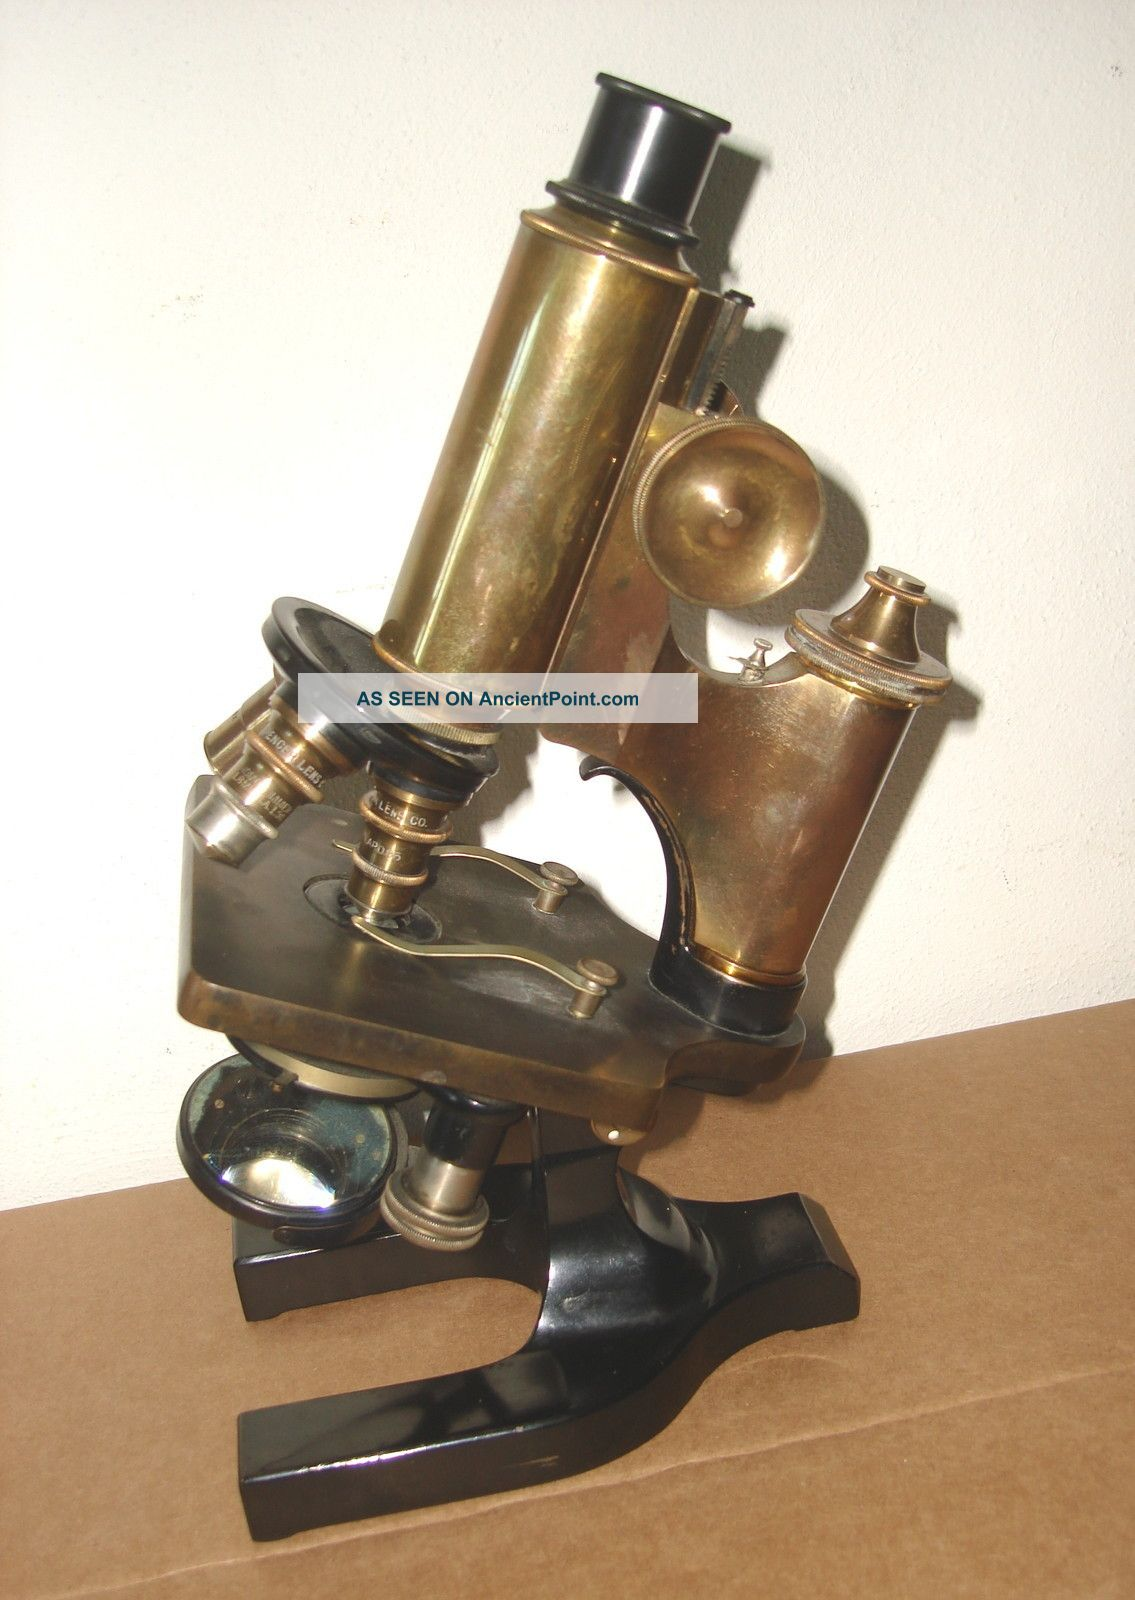 Antique Excellent Yrs Old...: quoteko.com/old-microscopes.html